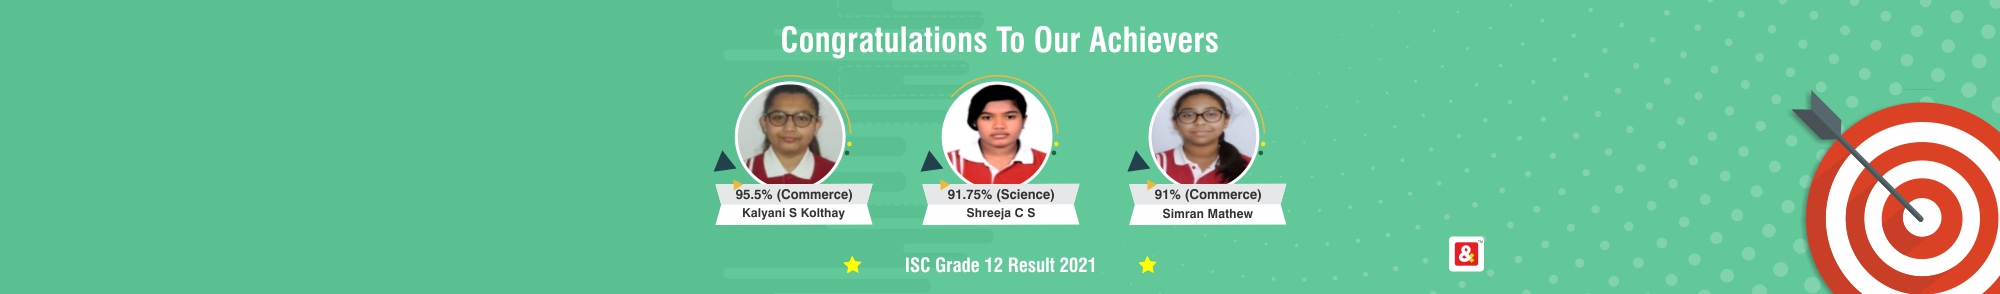 VIBGYOR High School in Haralur Isc result